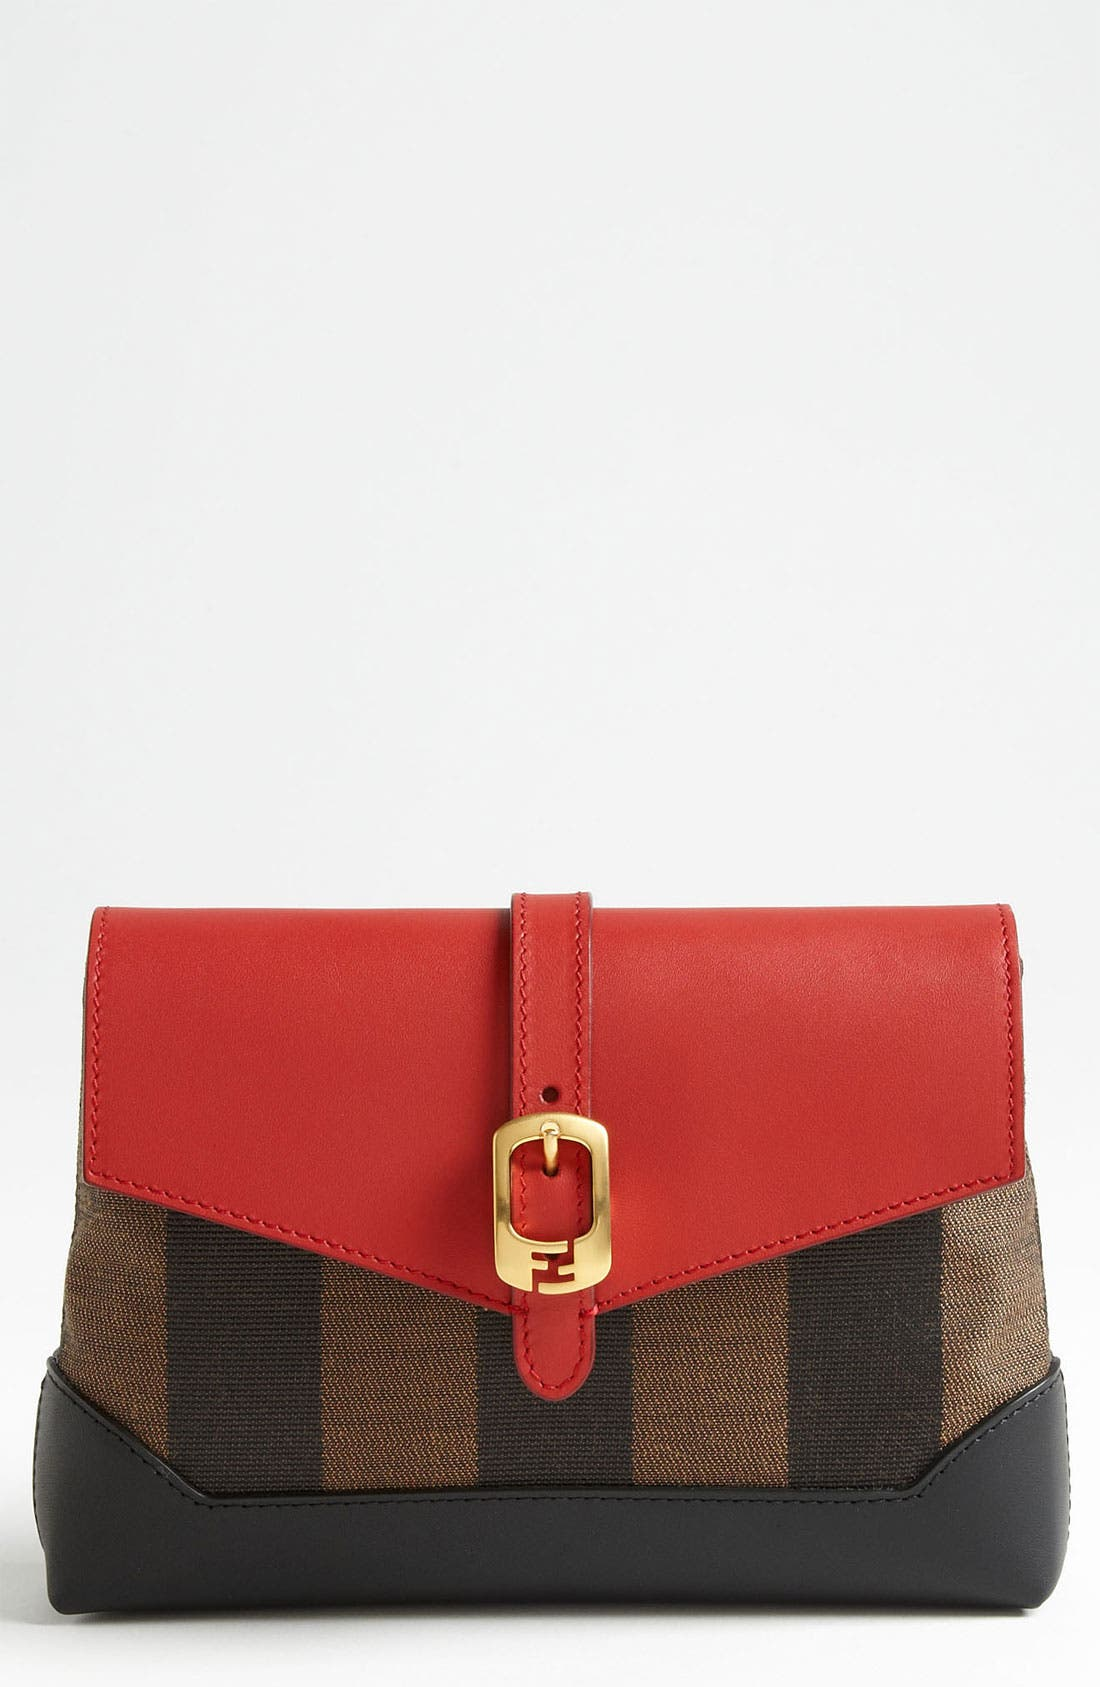 Main Image - Fendi 'Pequin - Mini' Crossbody Bag